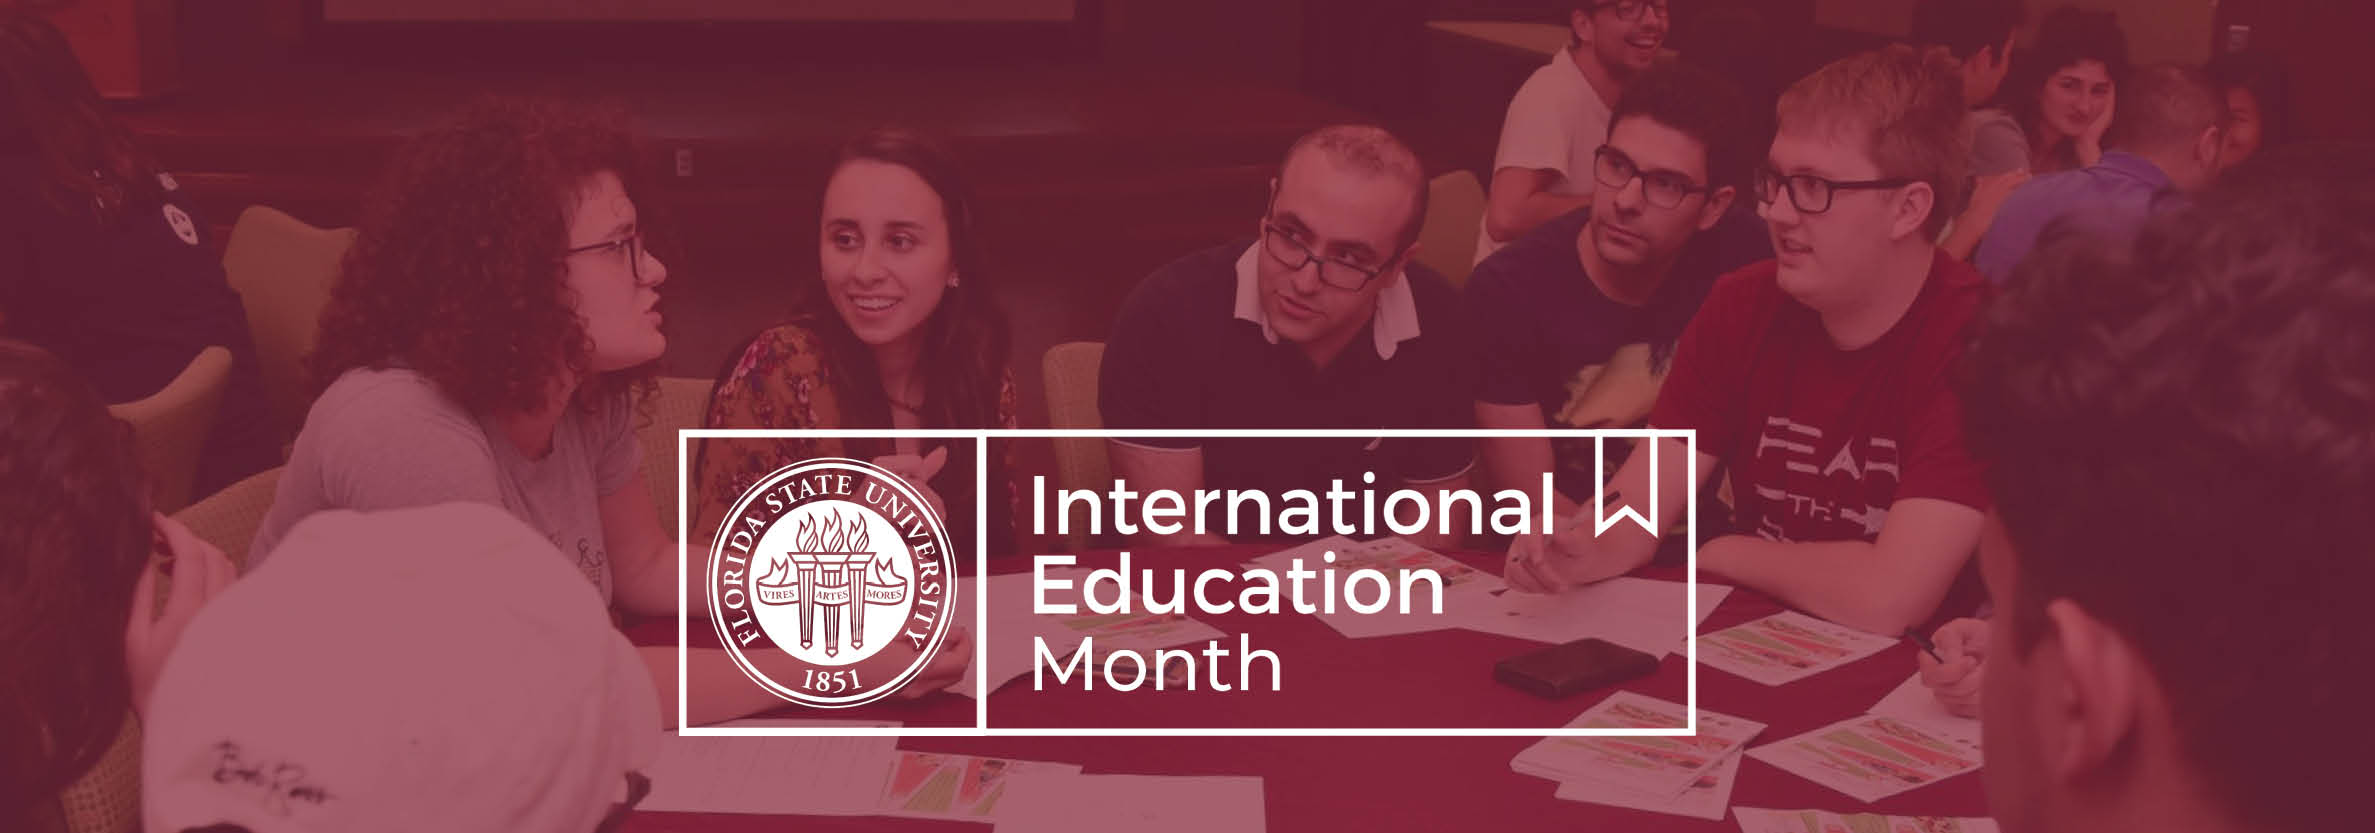 International Education Month 2019